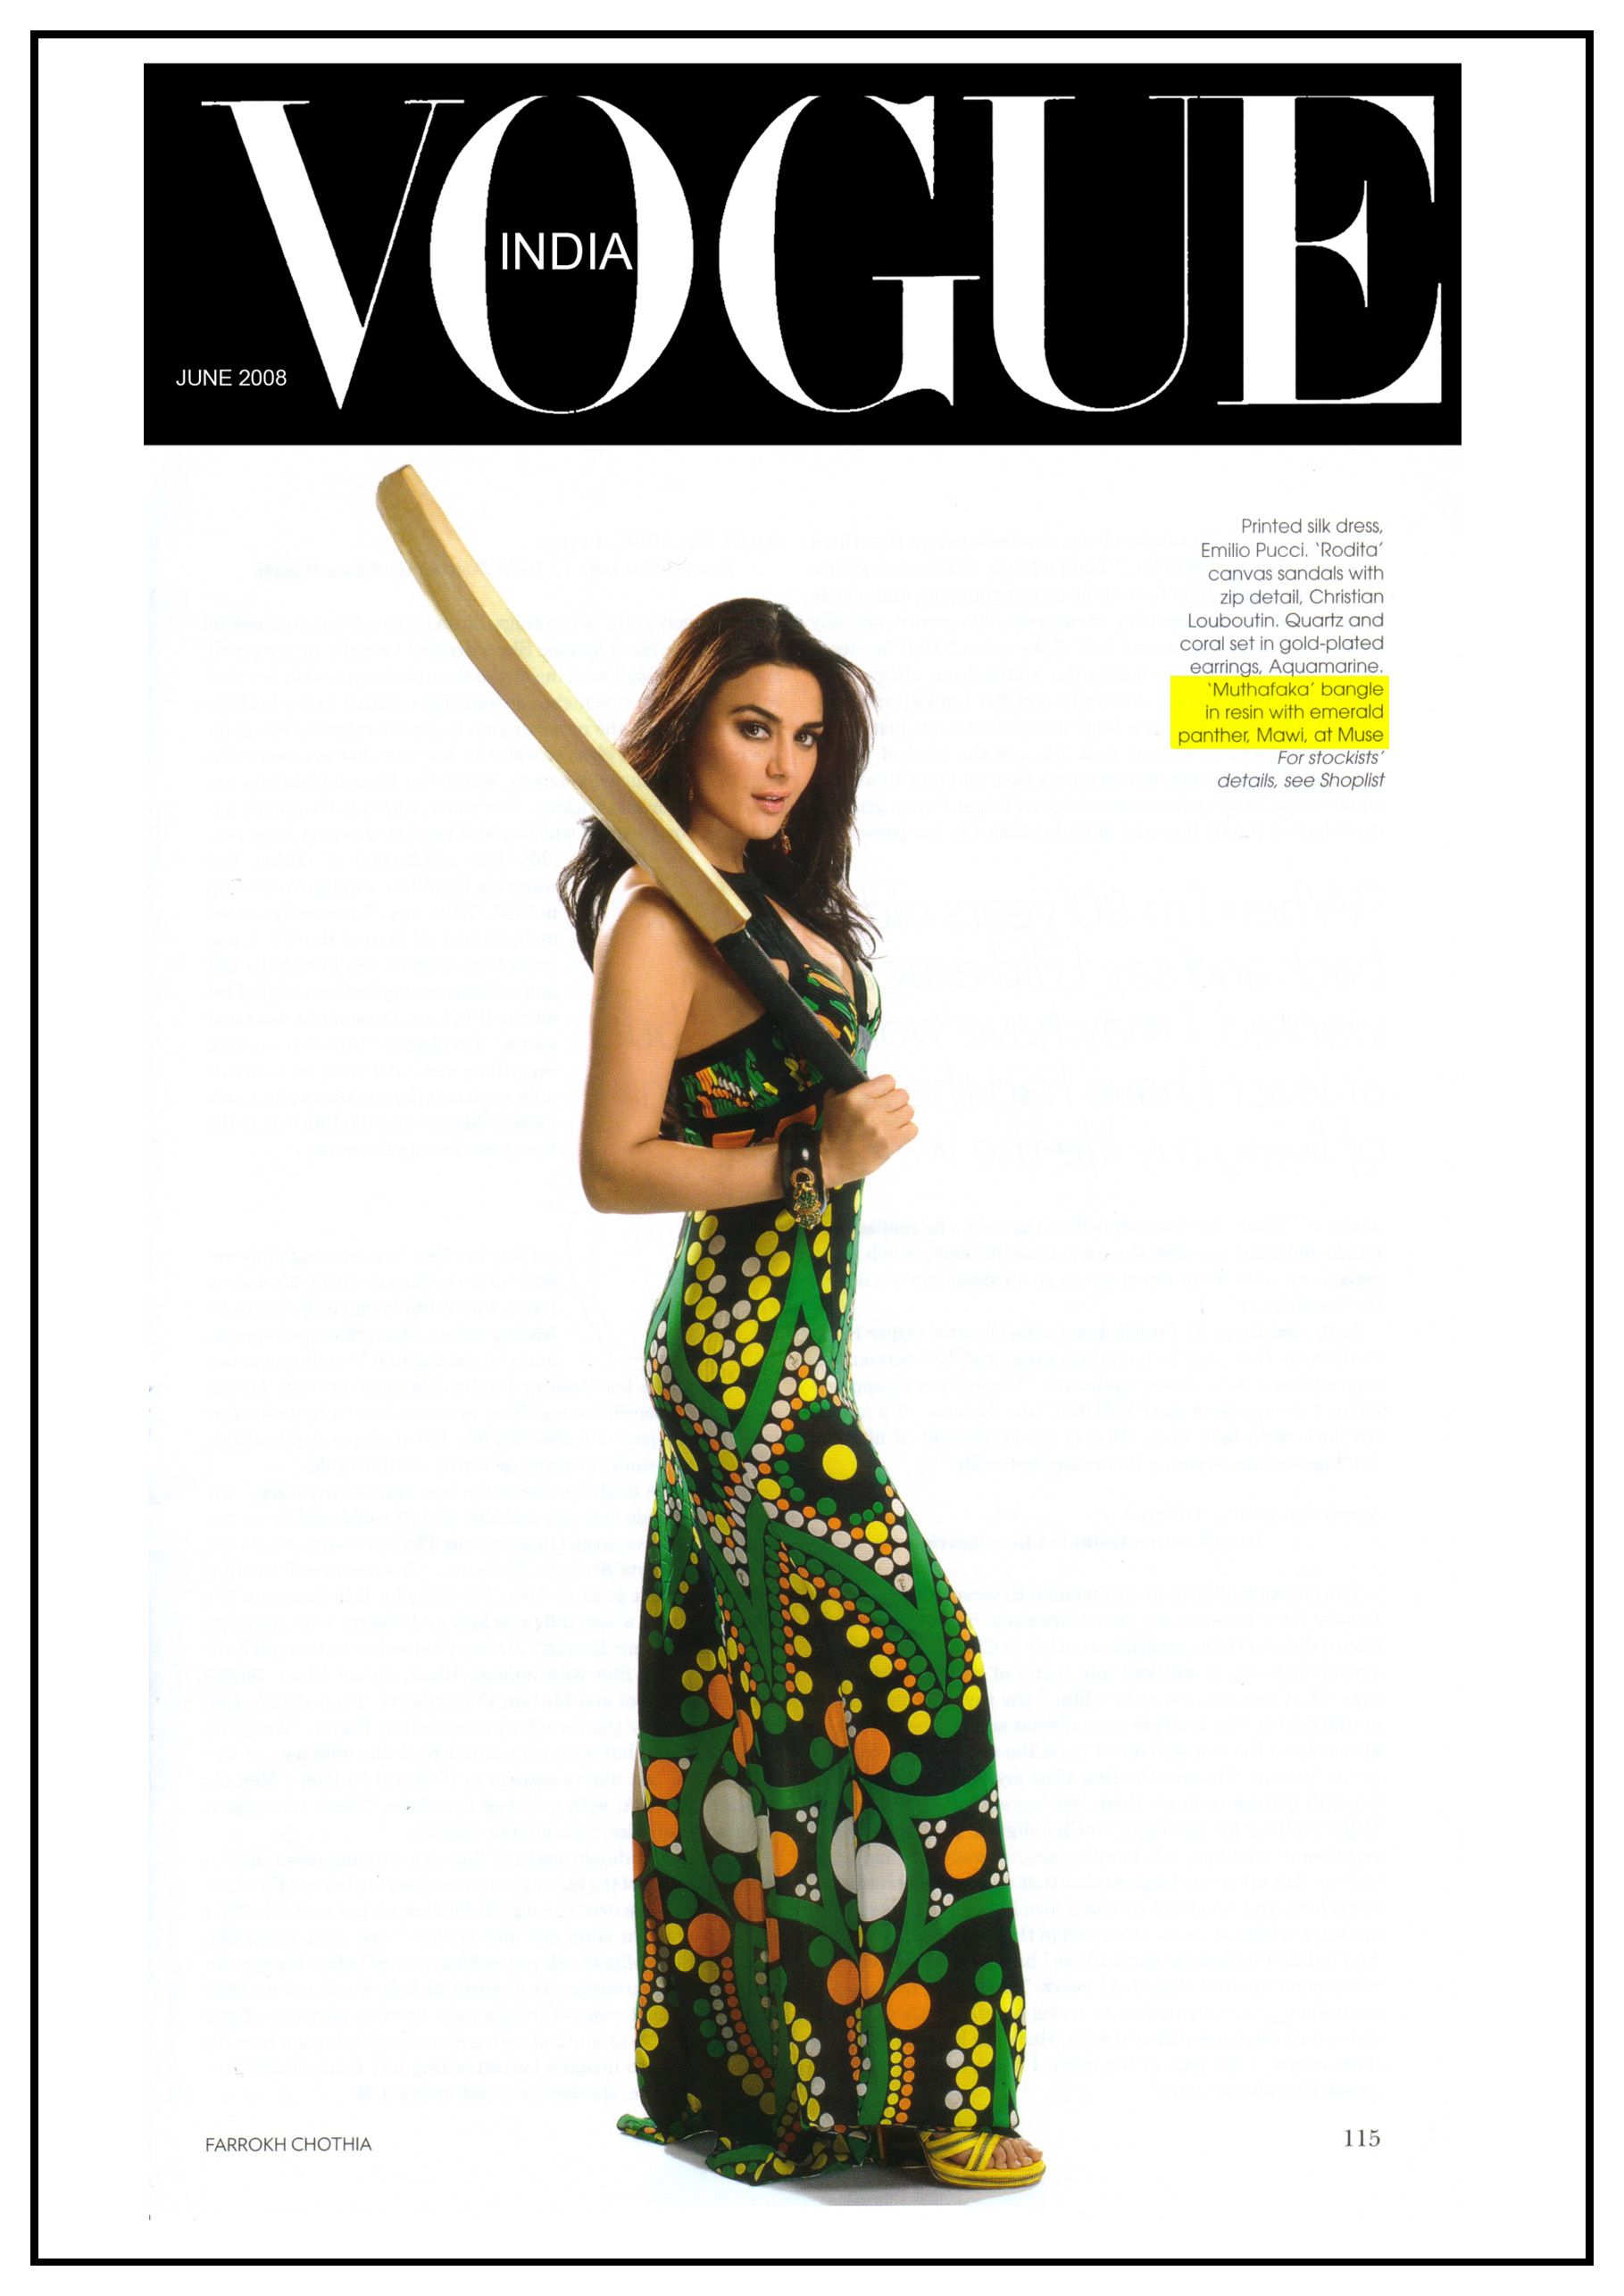 Sorry. A Cricket Bat is not just a pretty accessory! This feature in Vogue 94f6ca01f8d0